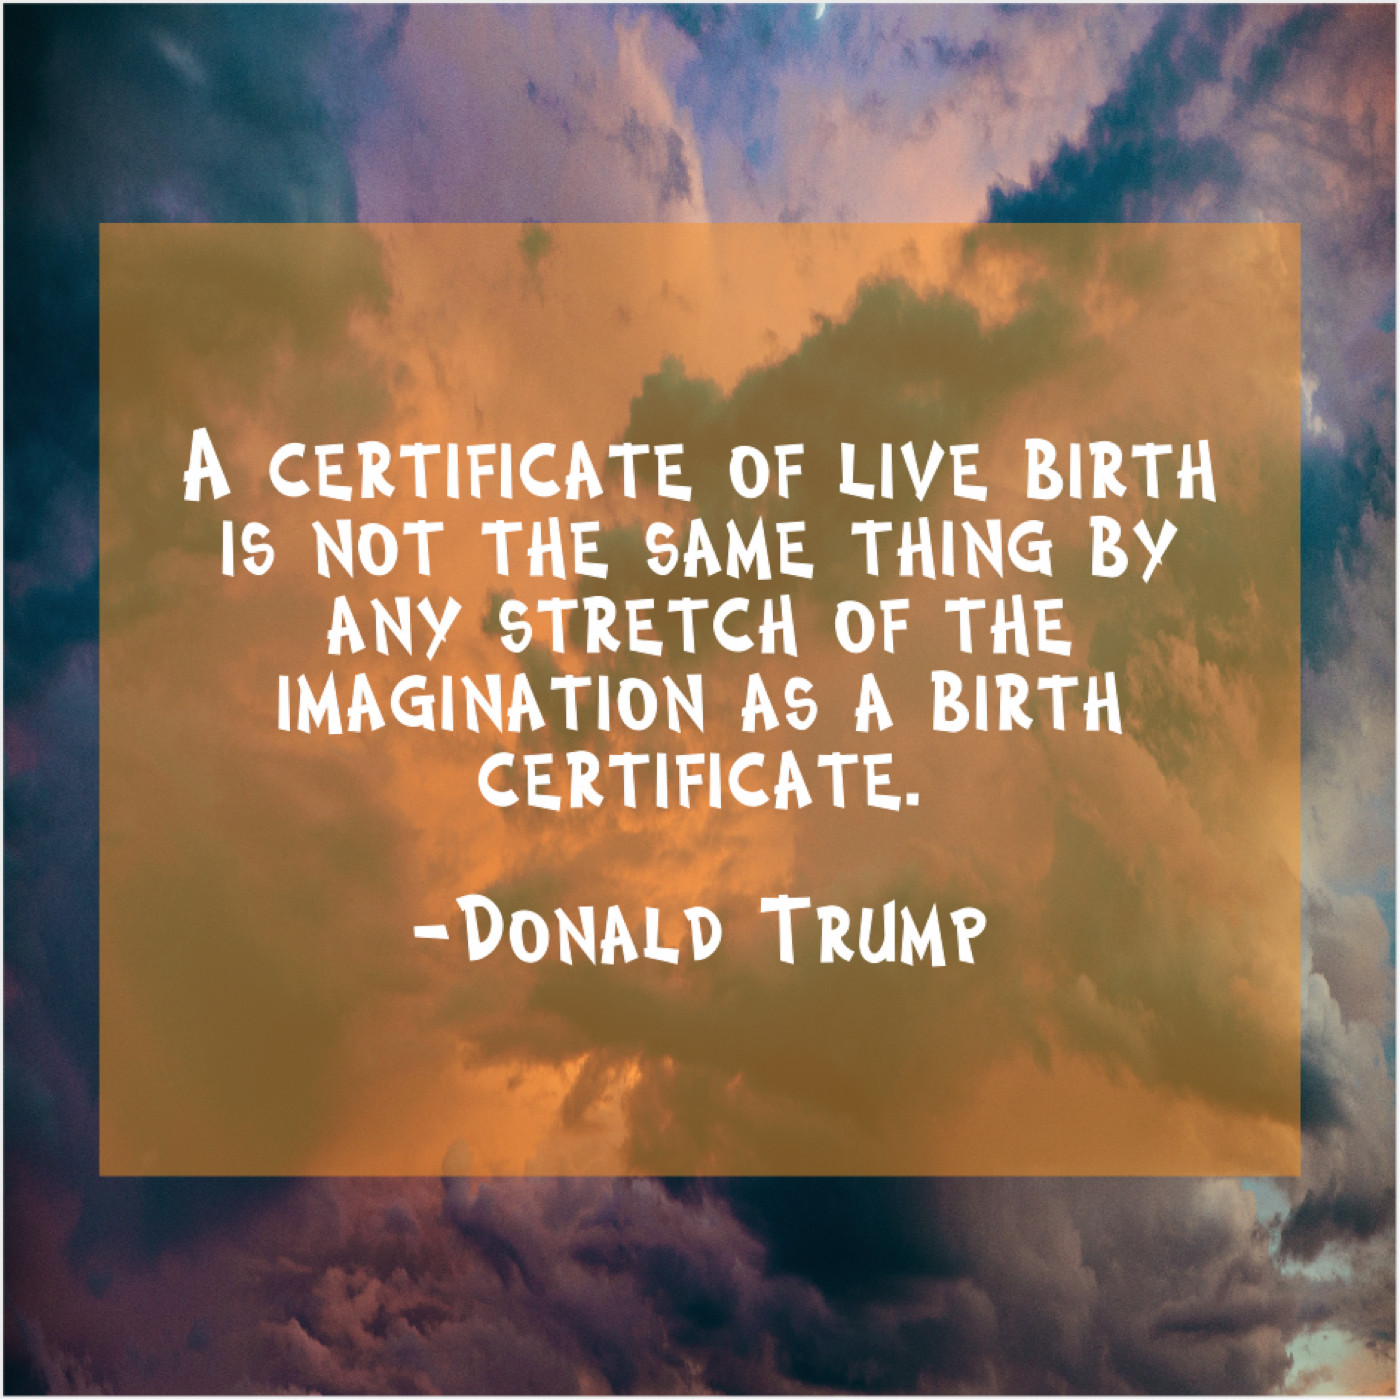 Donald Trump A Certificate Of Live Birth